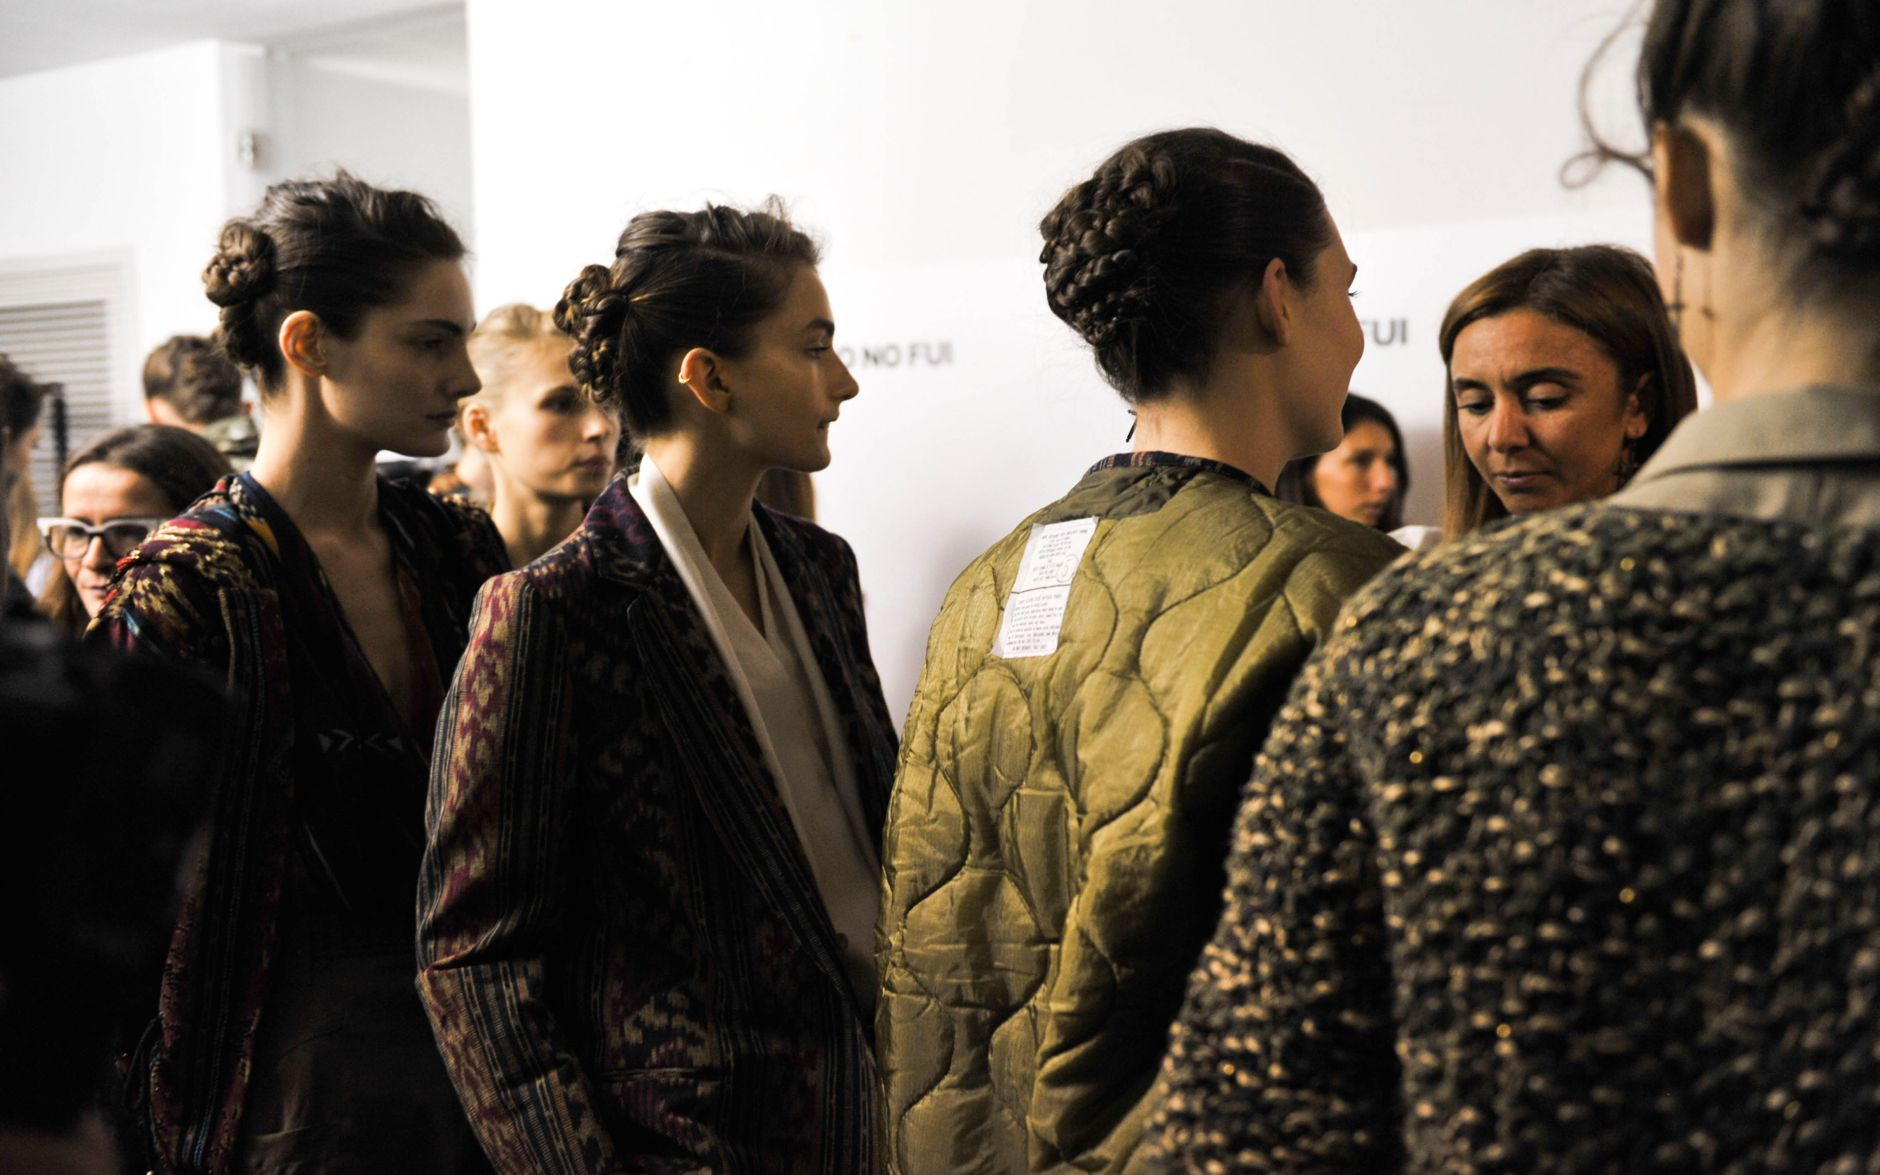 Jo No Fui Backstage Spring 2013 Milano Fashion Week